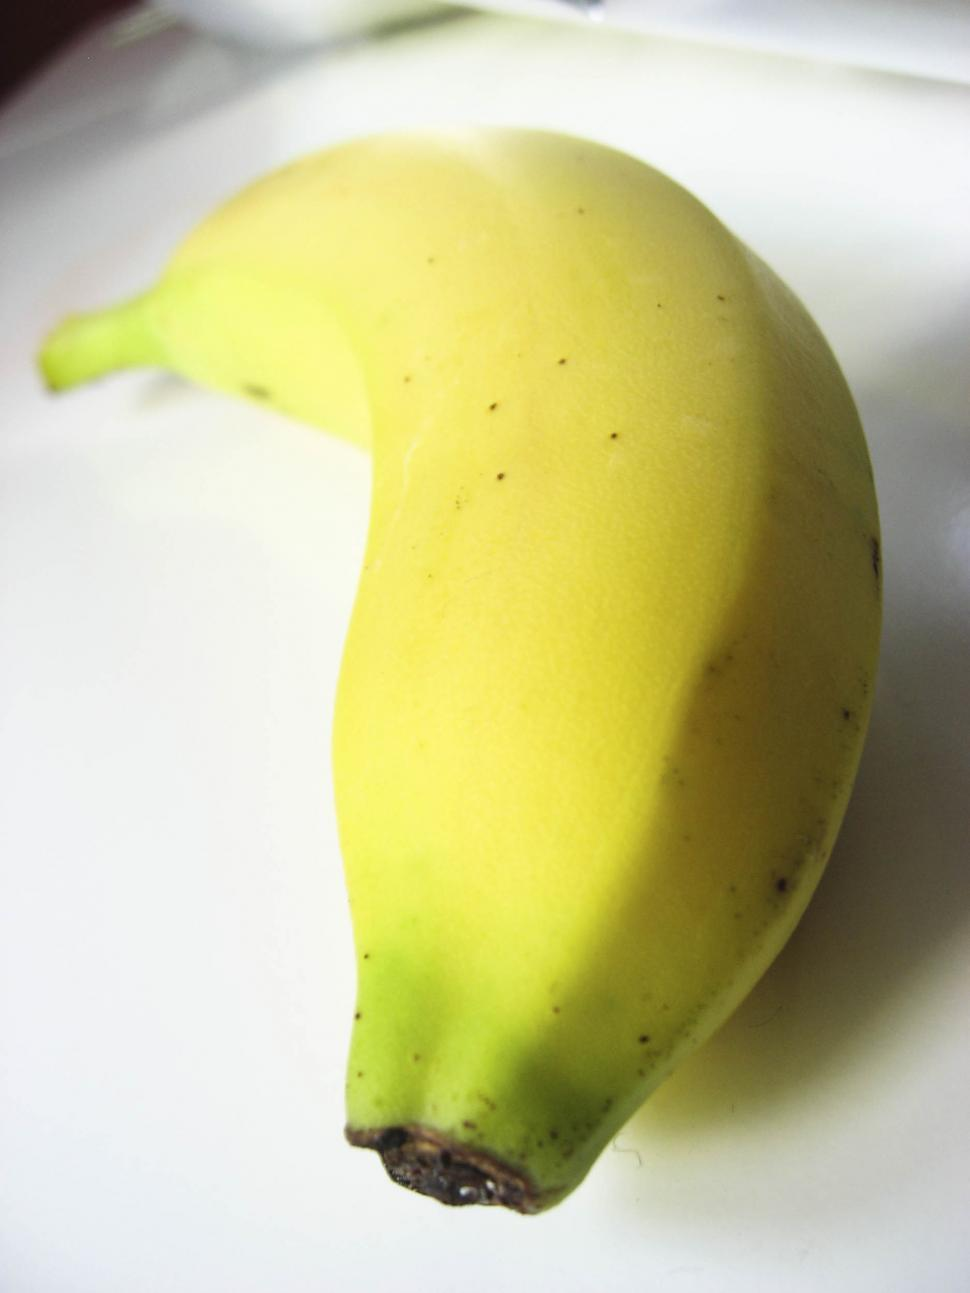 Download Free Stock HD Photo of banana Online